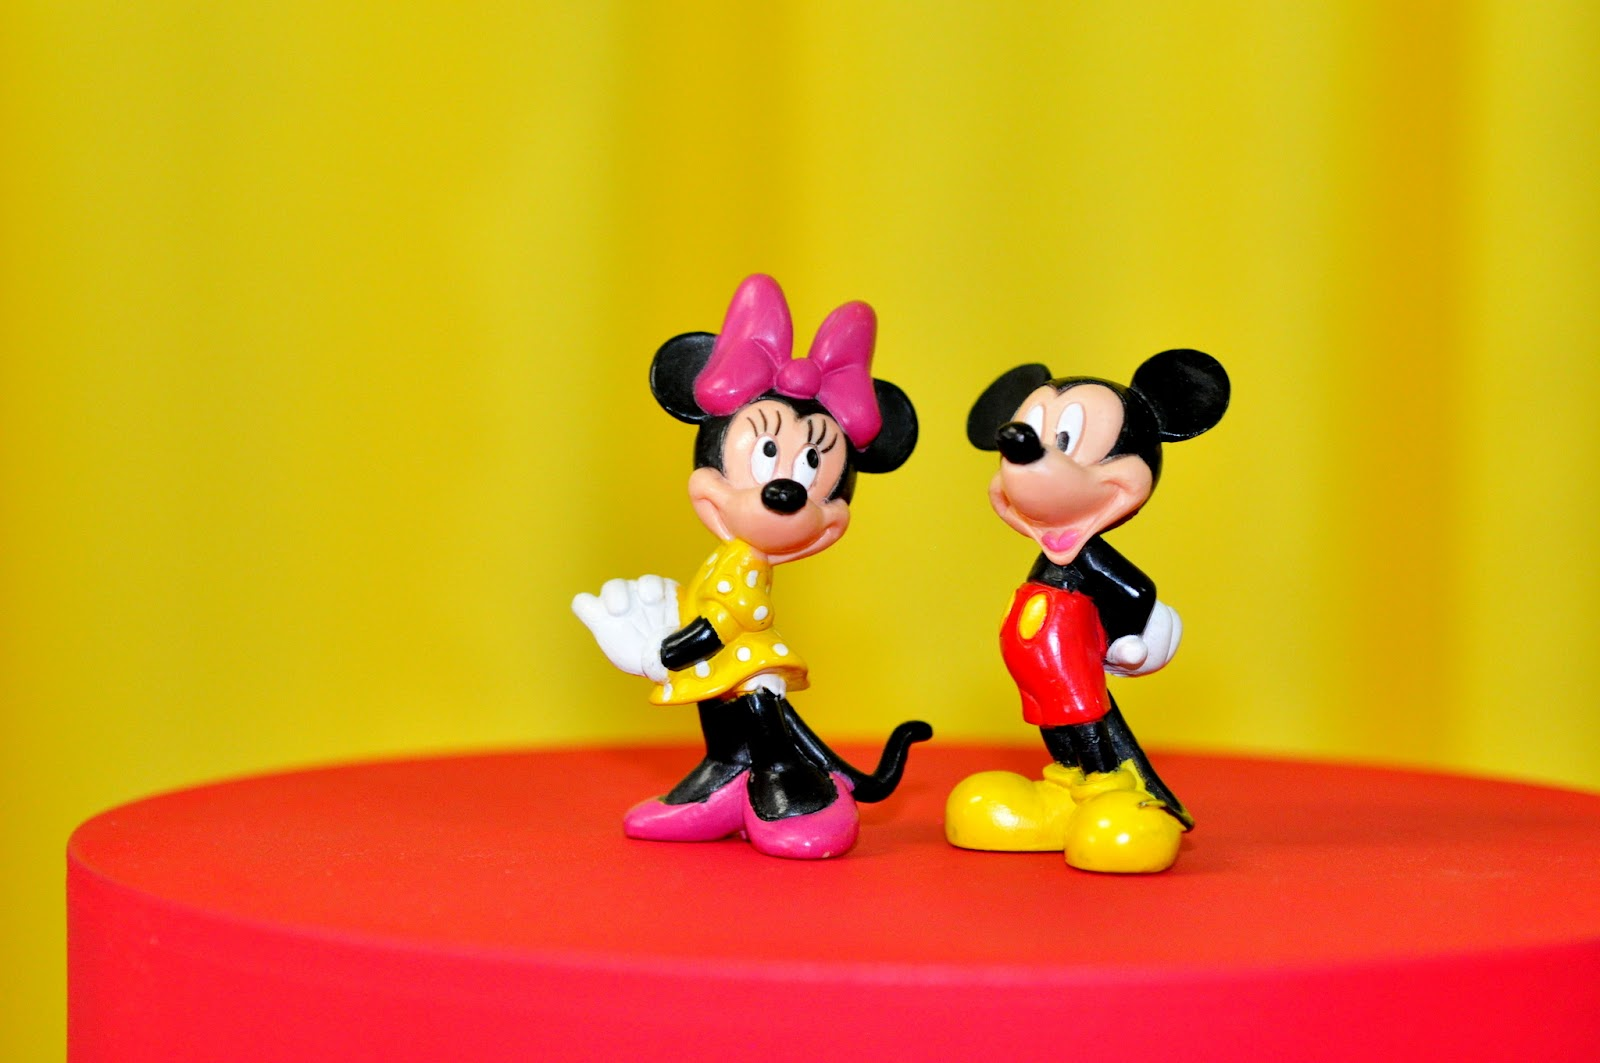 Disney, Mickey, Minnie, Pateta, Pluto, Donald e Margarida.